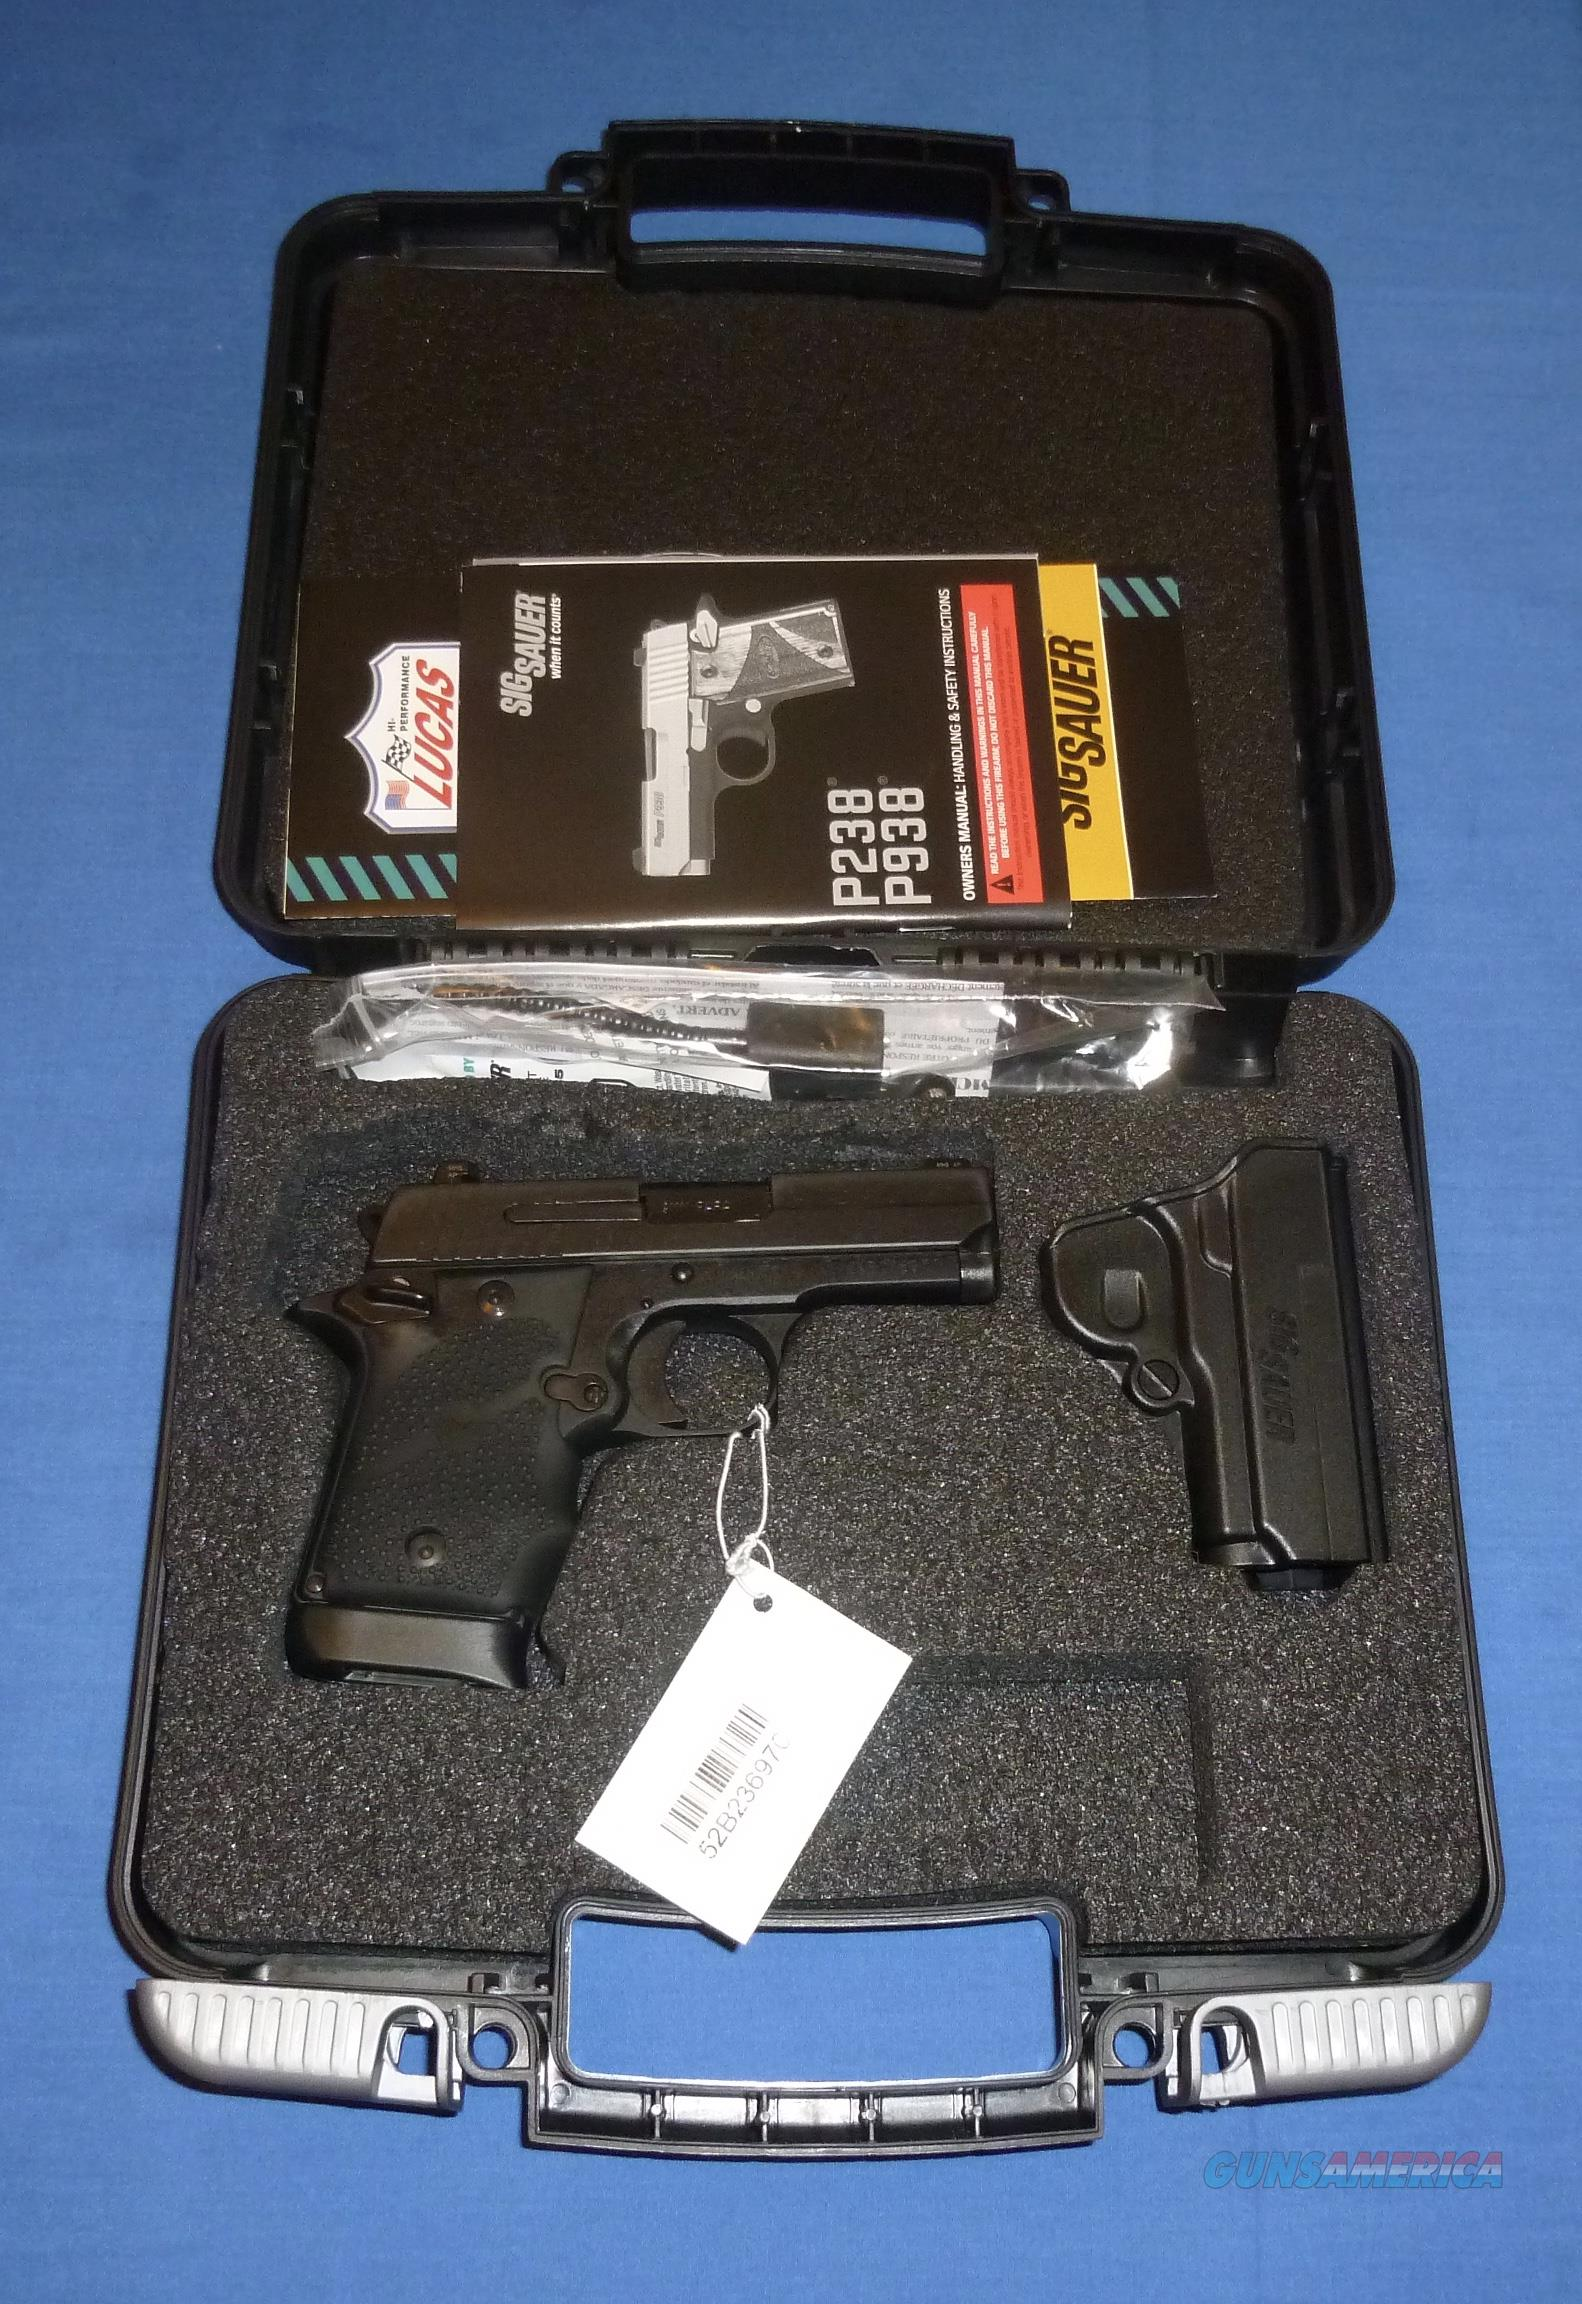 SALE PRICED! SIG P938 BRG MICRO-COMPACT 9MM PISTOL W/NIGHT SIGHT & HOLSTER  Guns > Pistols > Sig - Sauer/Sigarms Pistols > P938